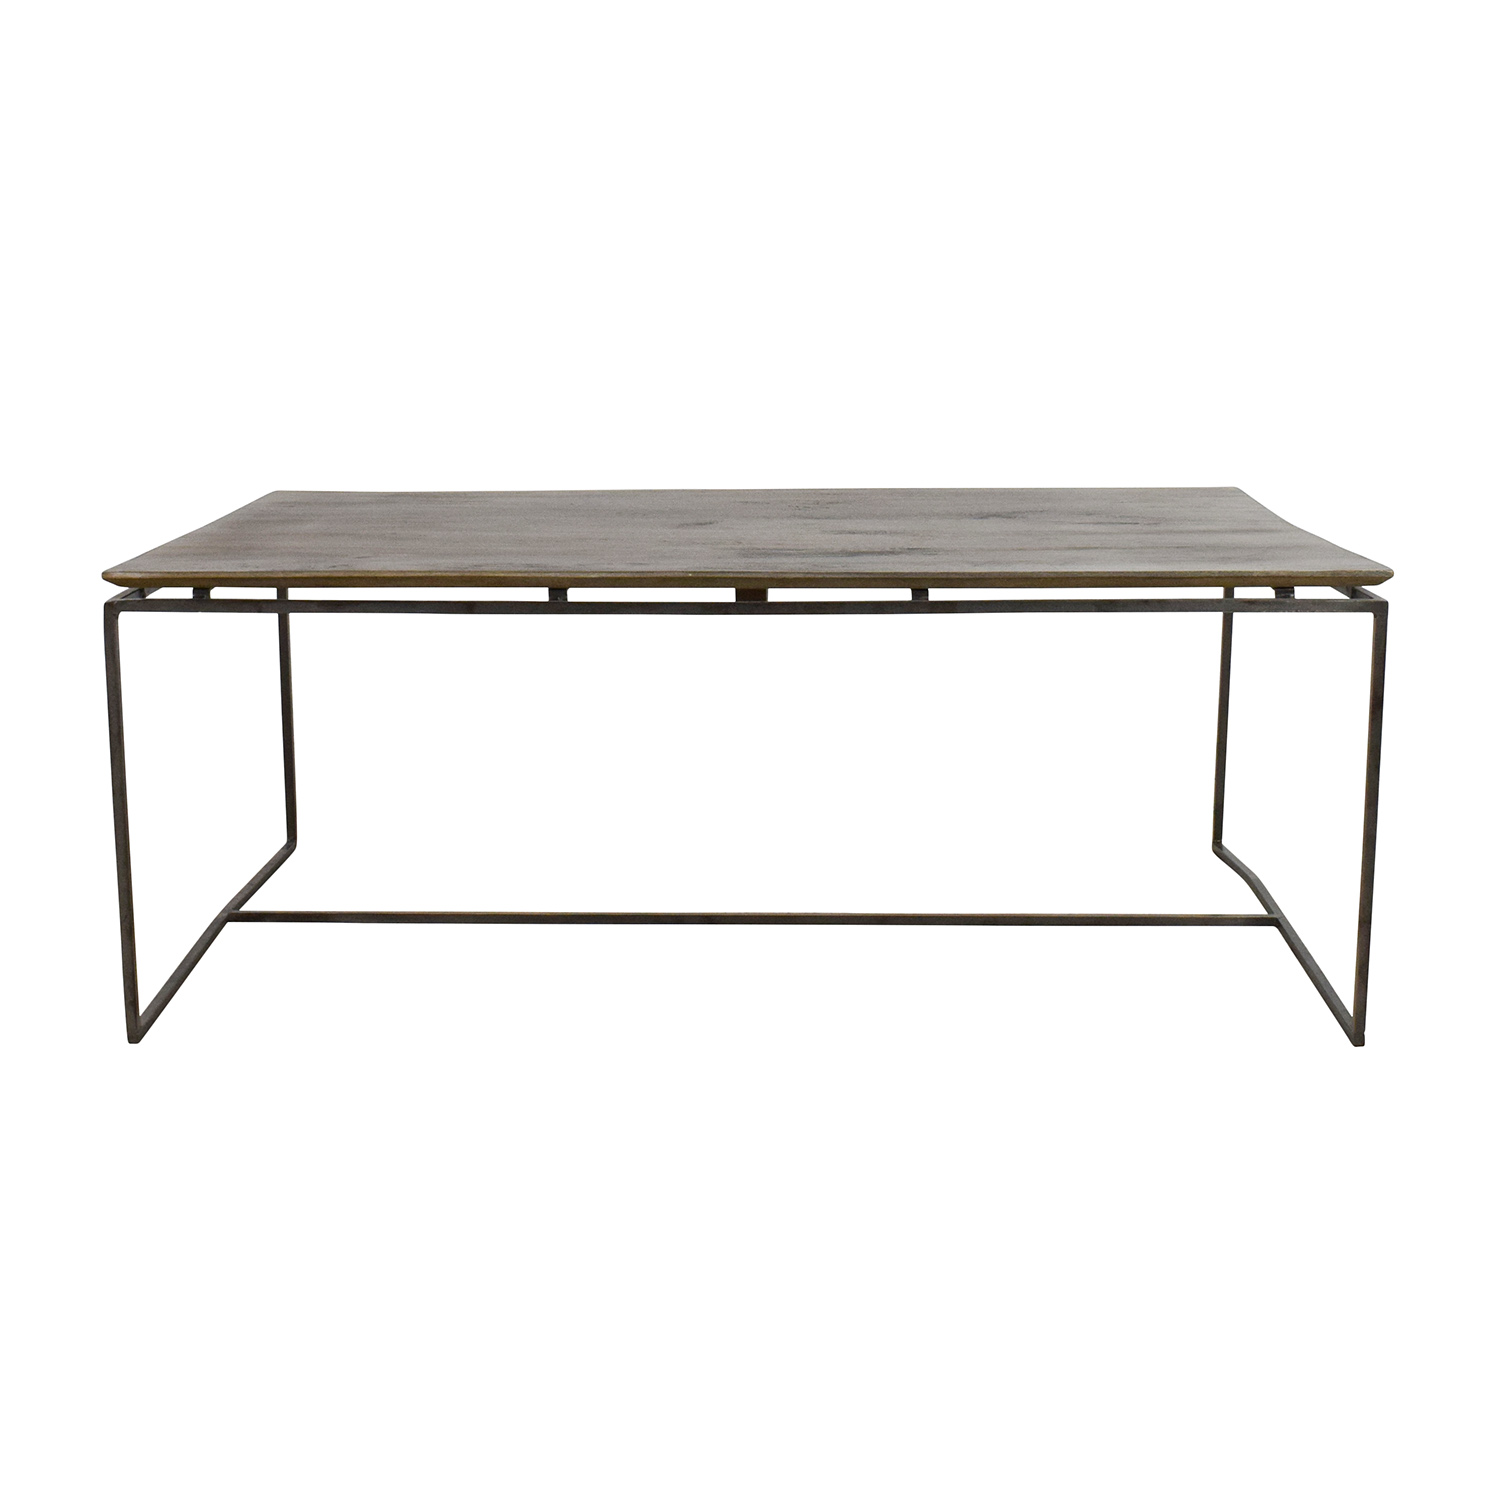 Nadeau Nadeau Wood and Iron Coffee Table used